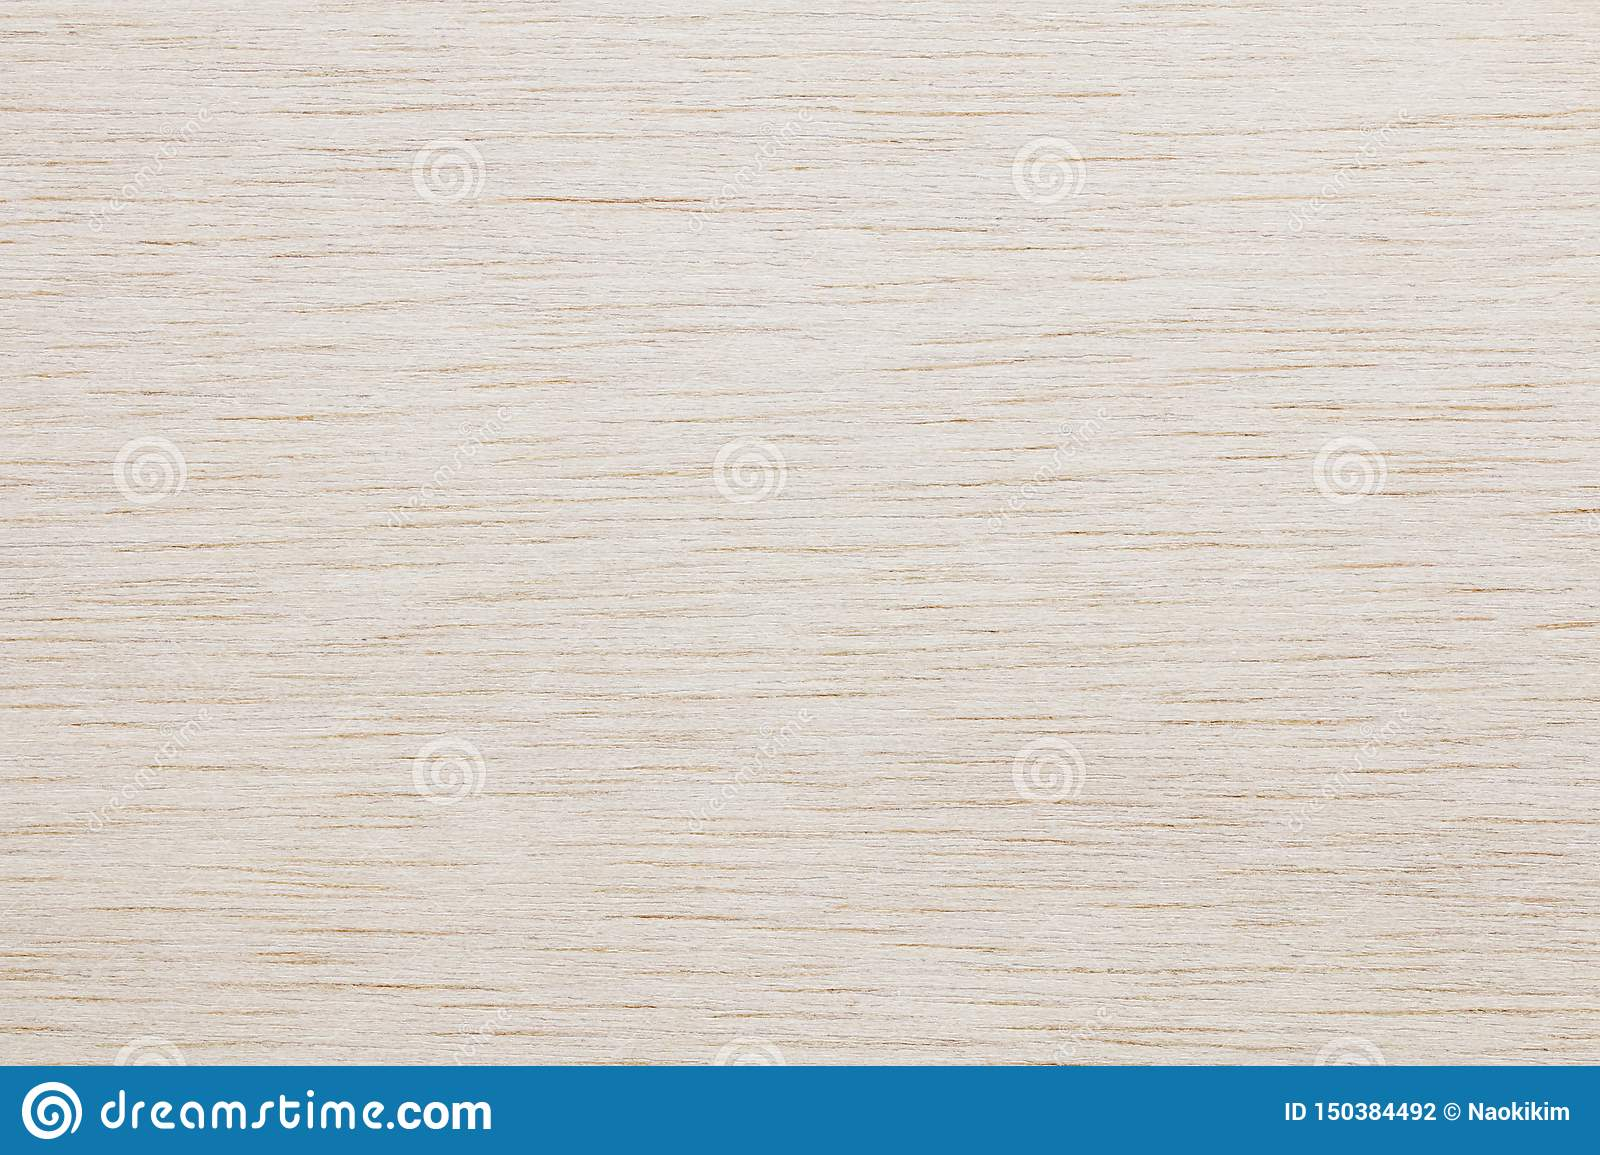 Natural white wood plank abstract or vintage board texture background